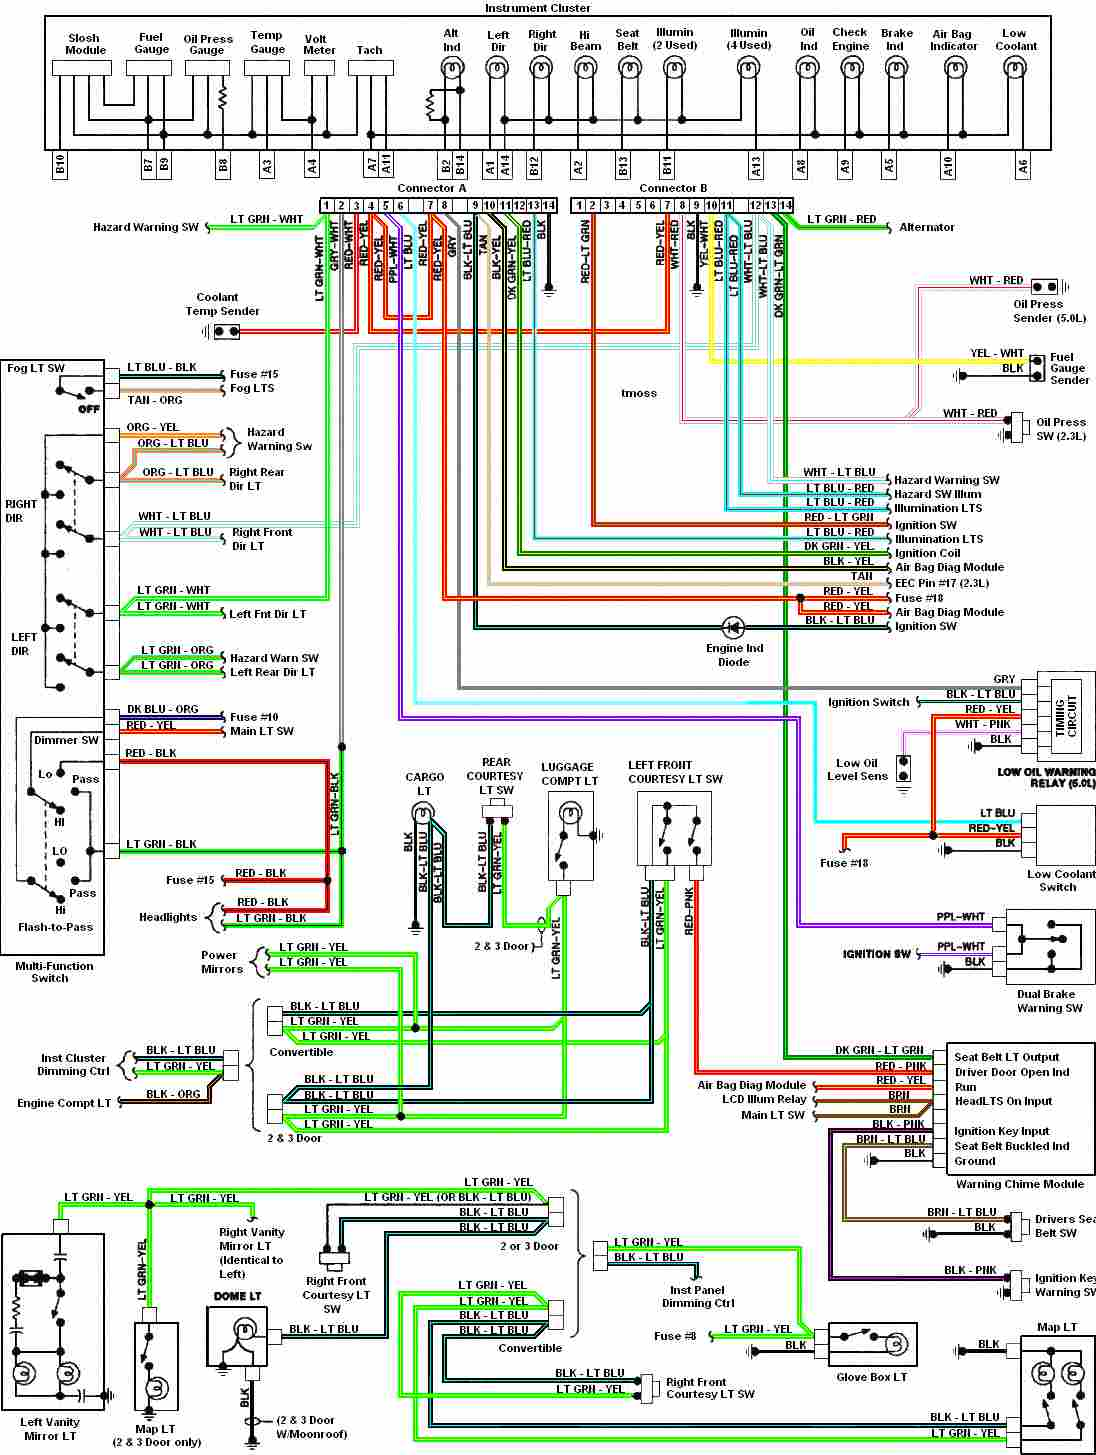 Car Circuit Page 4 Automotive Circuits 2001 Mitsubishi Eclipse Headlight Wiring Diagram Instrument Cluster 1987 1993 Ford Mustang